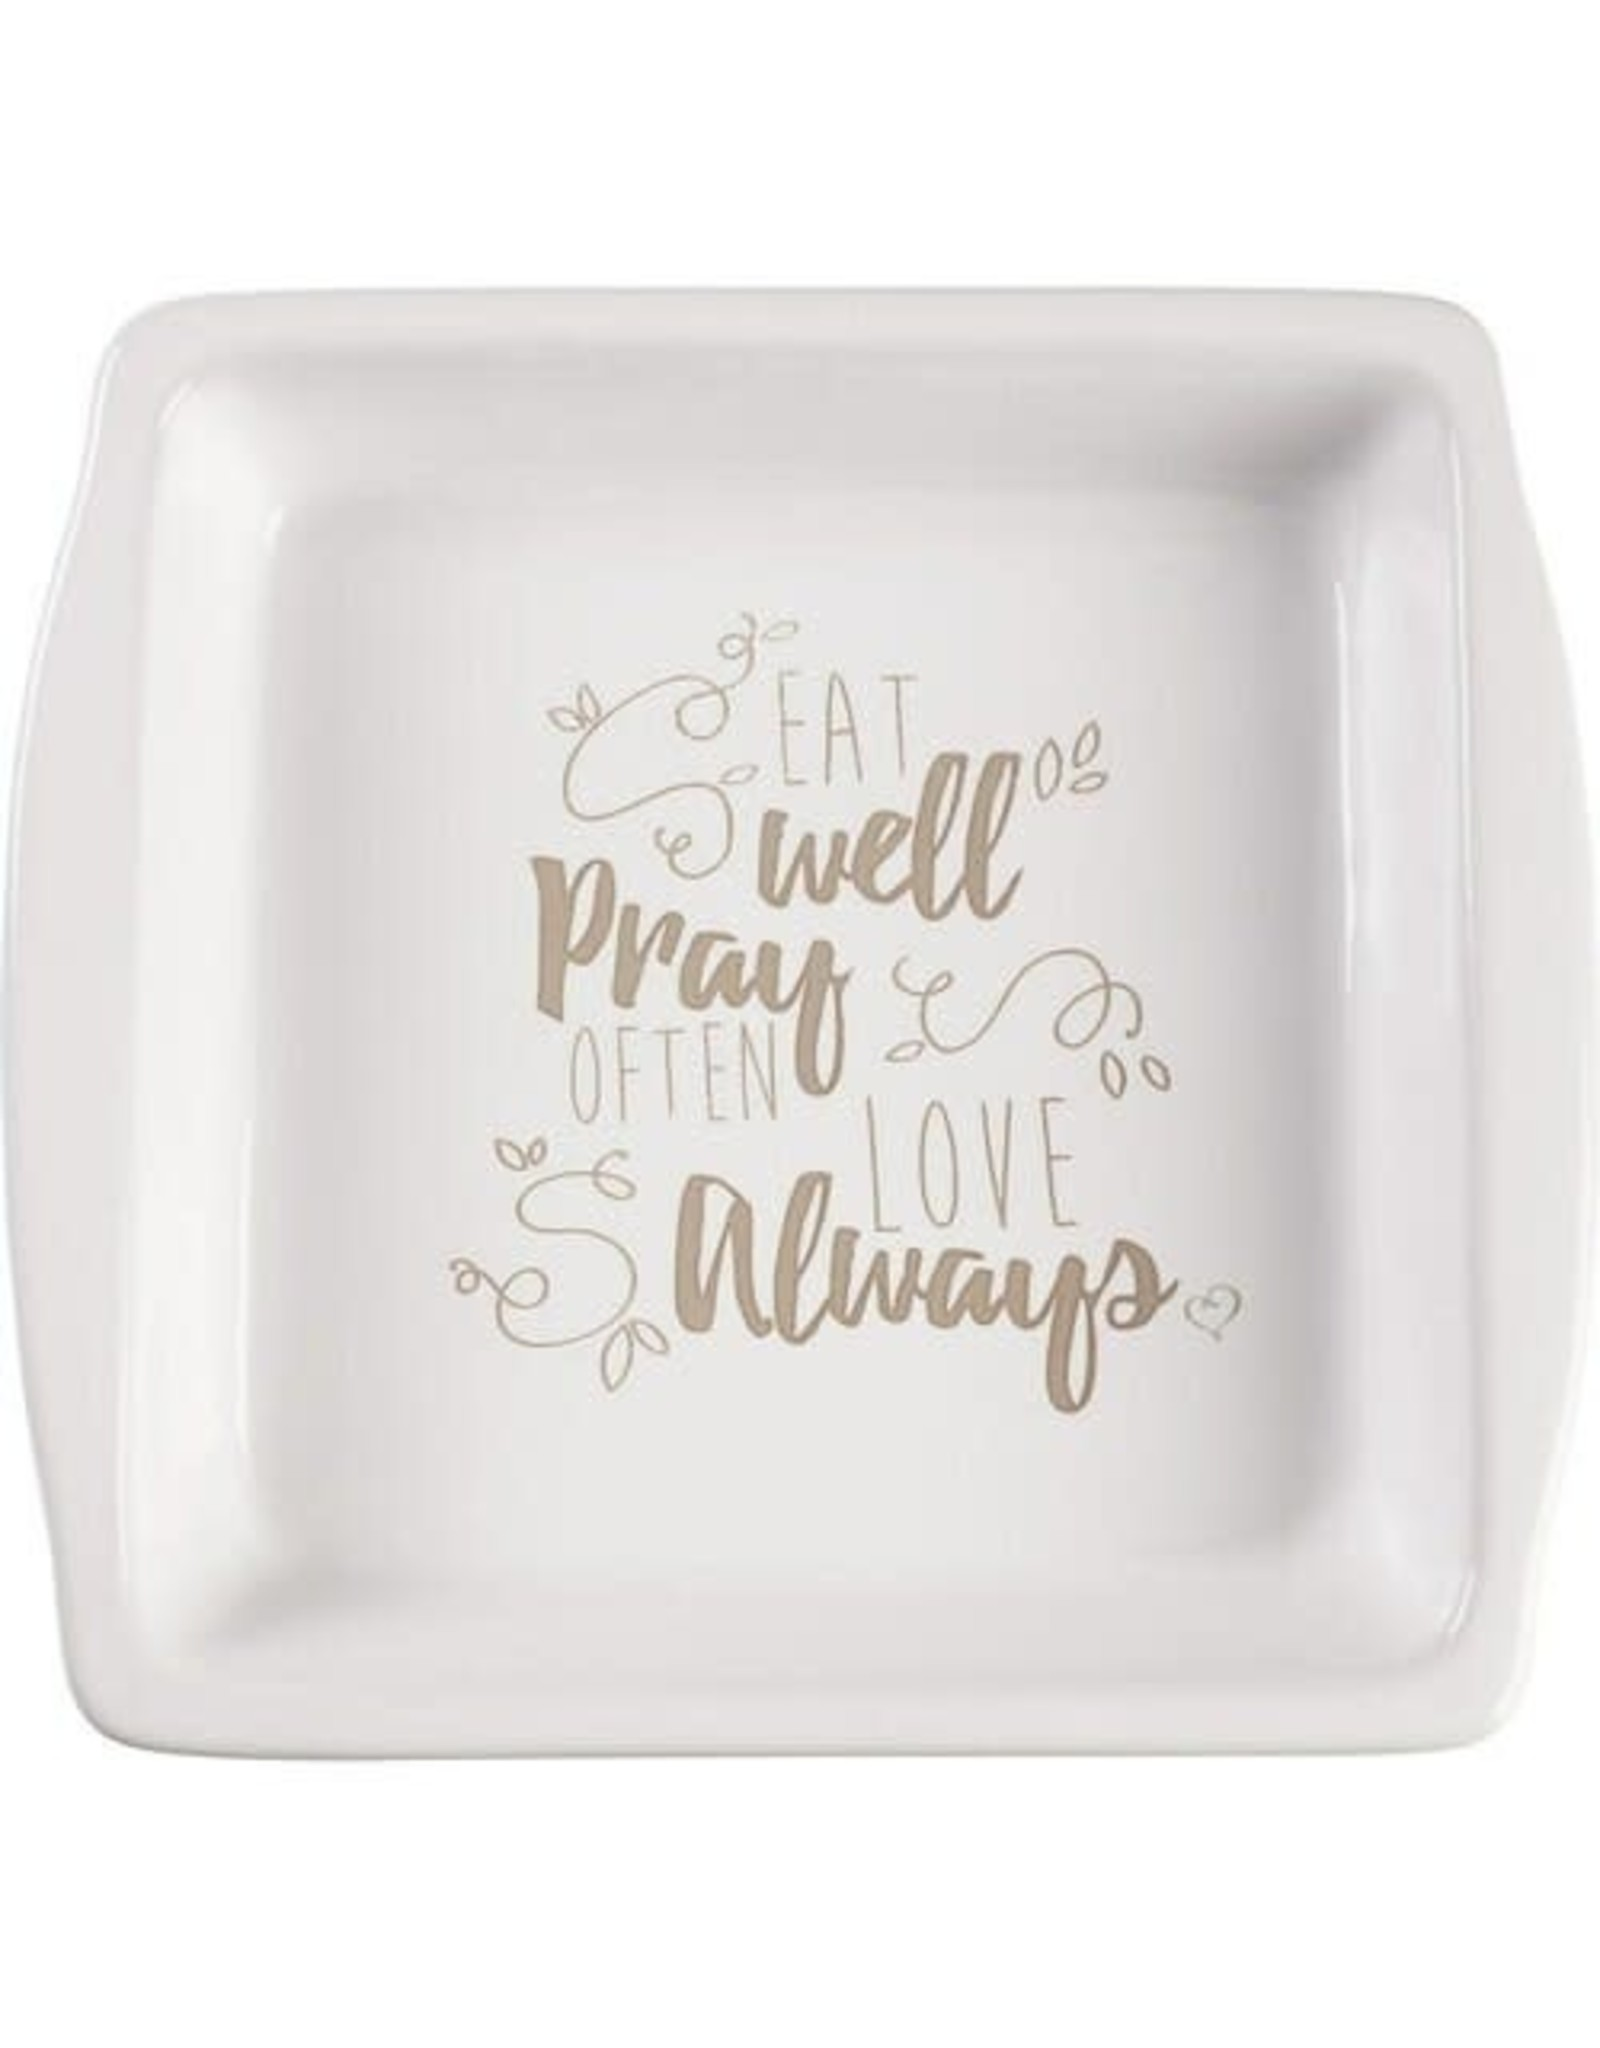 Precious Moments Bountiful Blessings, Eat Well Pray Often Love Always, Ceramic Brownie Pan, 9 in